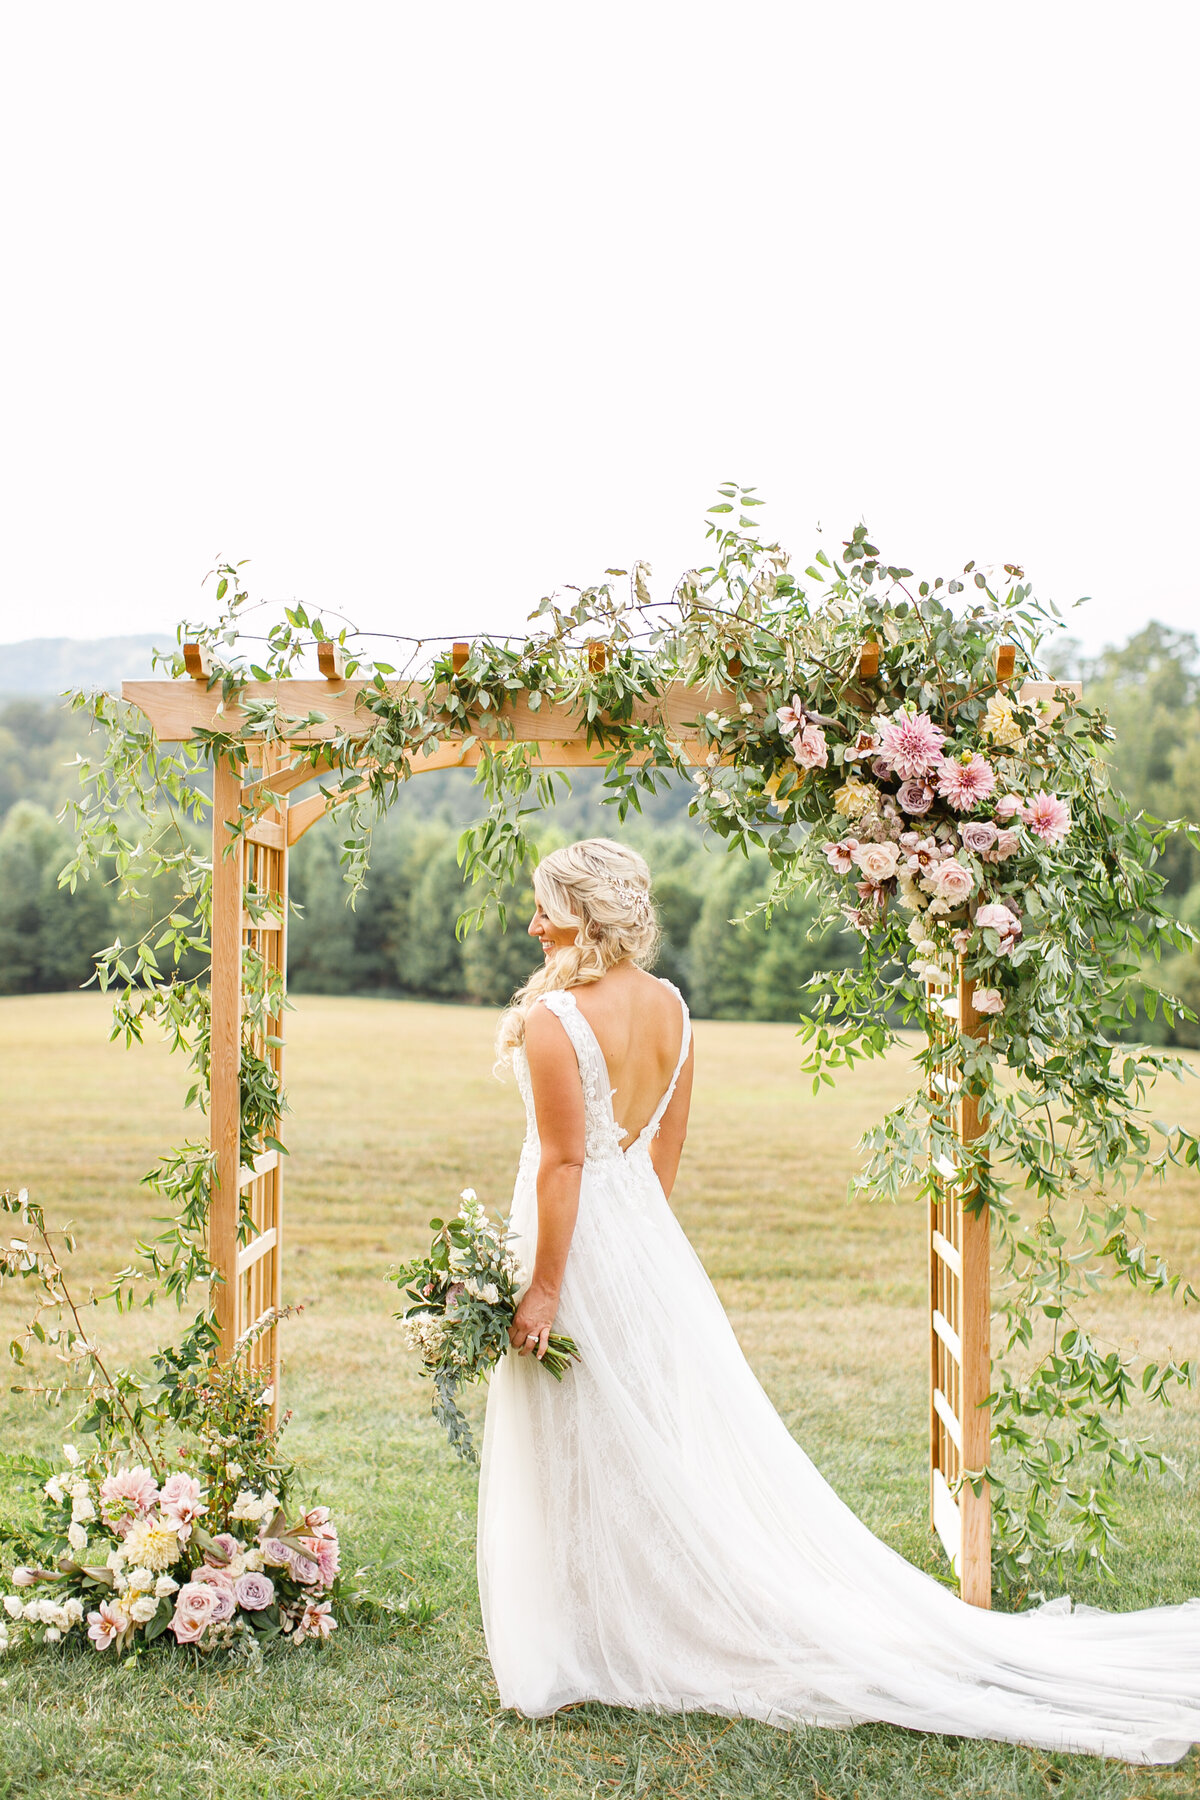 Tara Liebeck Photography Wedding Engagement Lifestyle Virginia Photographer Bright Light Airy112